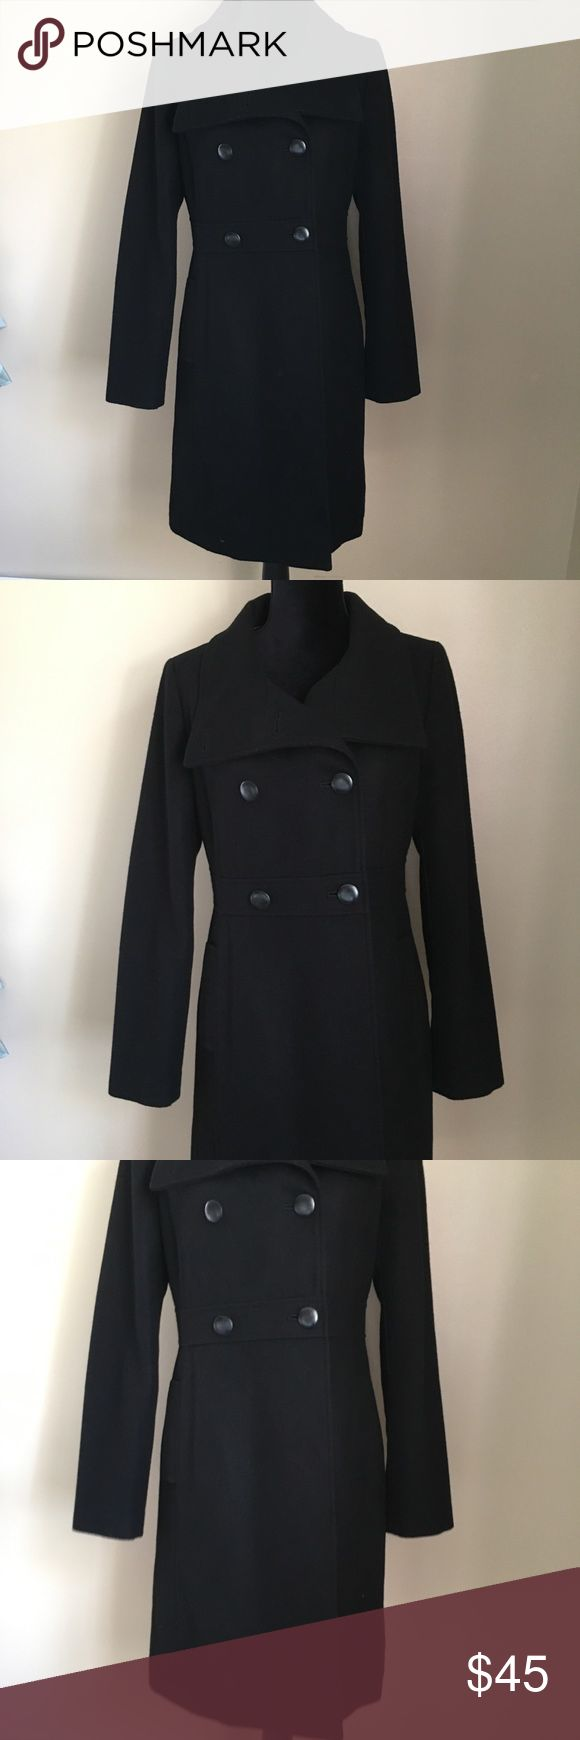 "Medium Old Navy Black Pea Coat Feminine with a fitted to the waist look and a small flare out.  Excellent condition, only worn a few times. 37"" Long, 19"" armpit to armpit, 17"" across the waist flat. Old Navy Jackets & Coats Pea Coats"